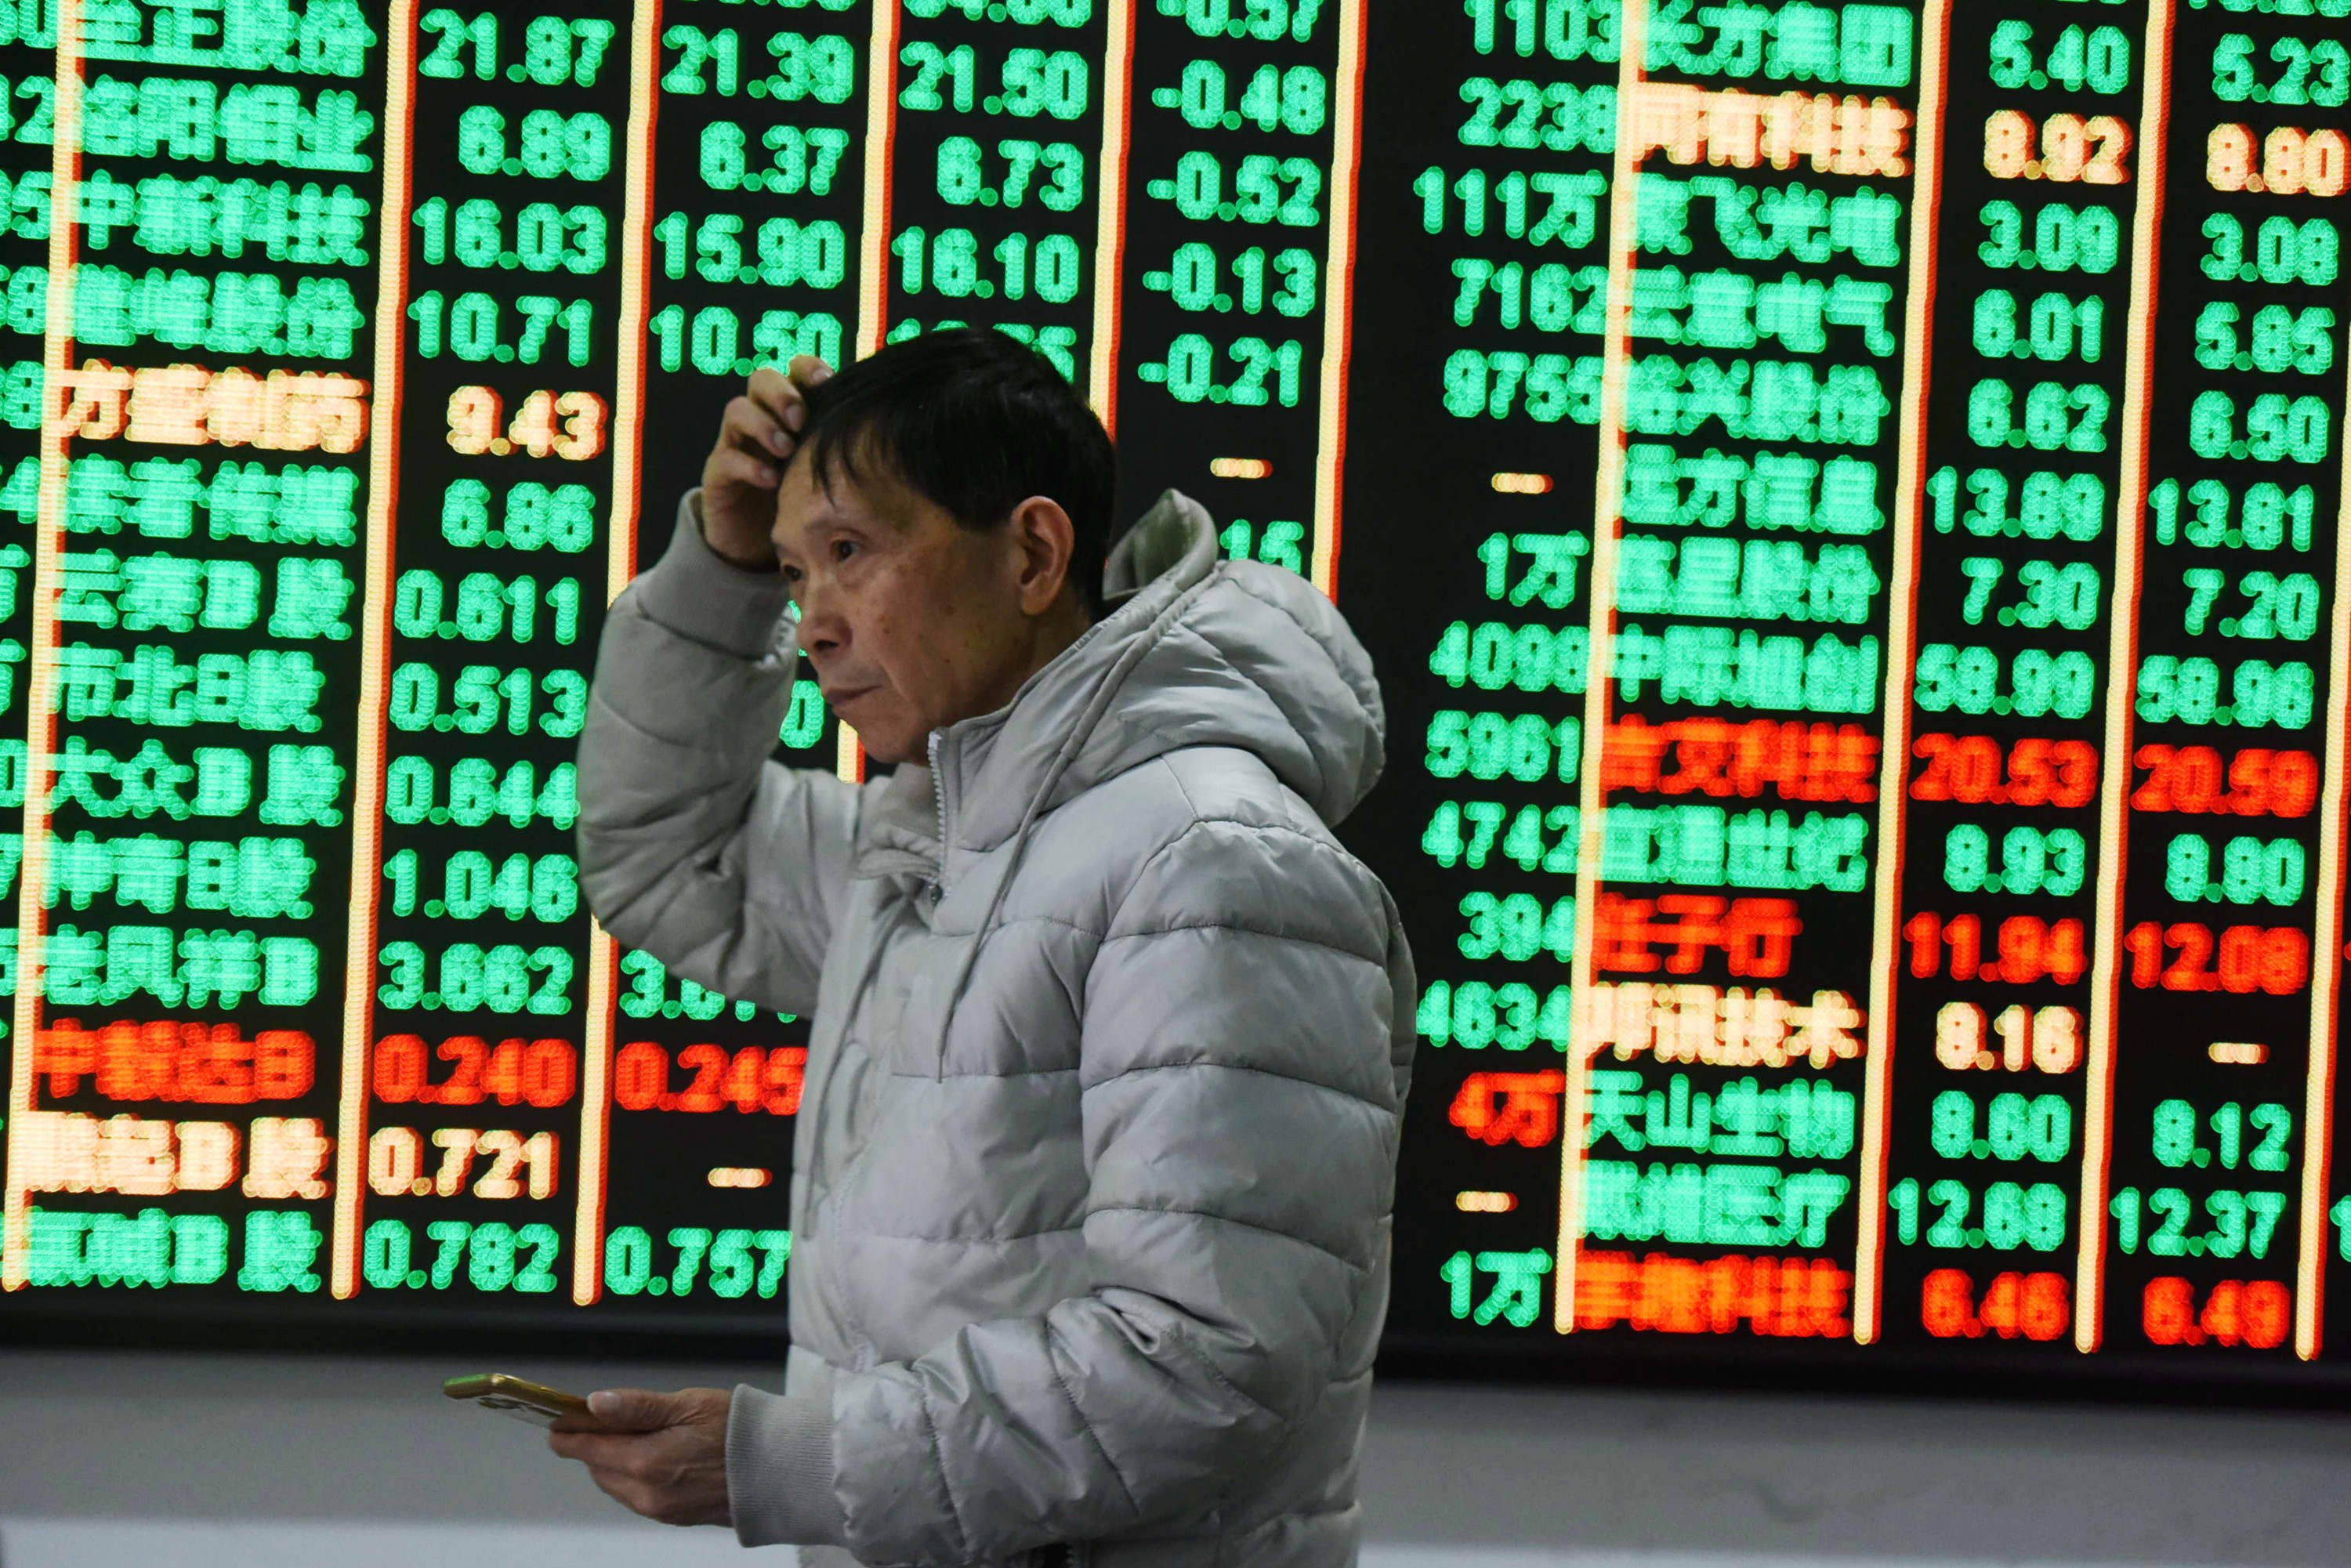 Stocks in China mostly tumble; Japan markets closed for 10-day holiday